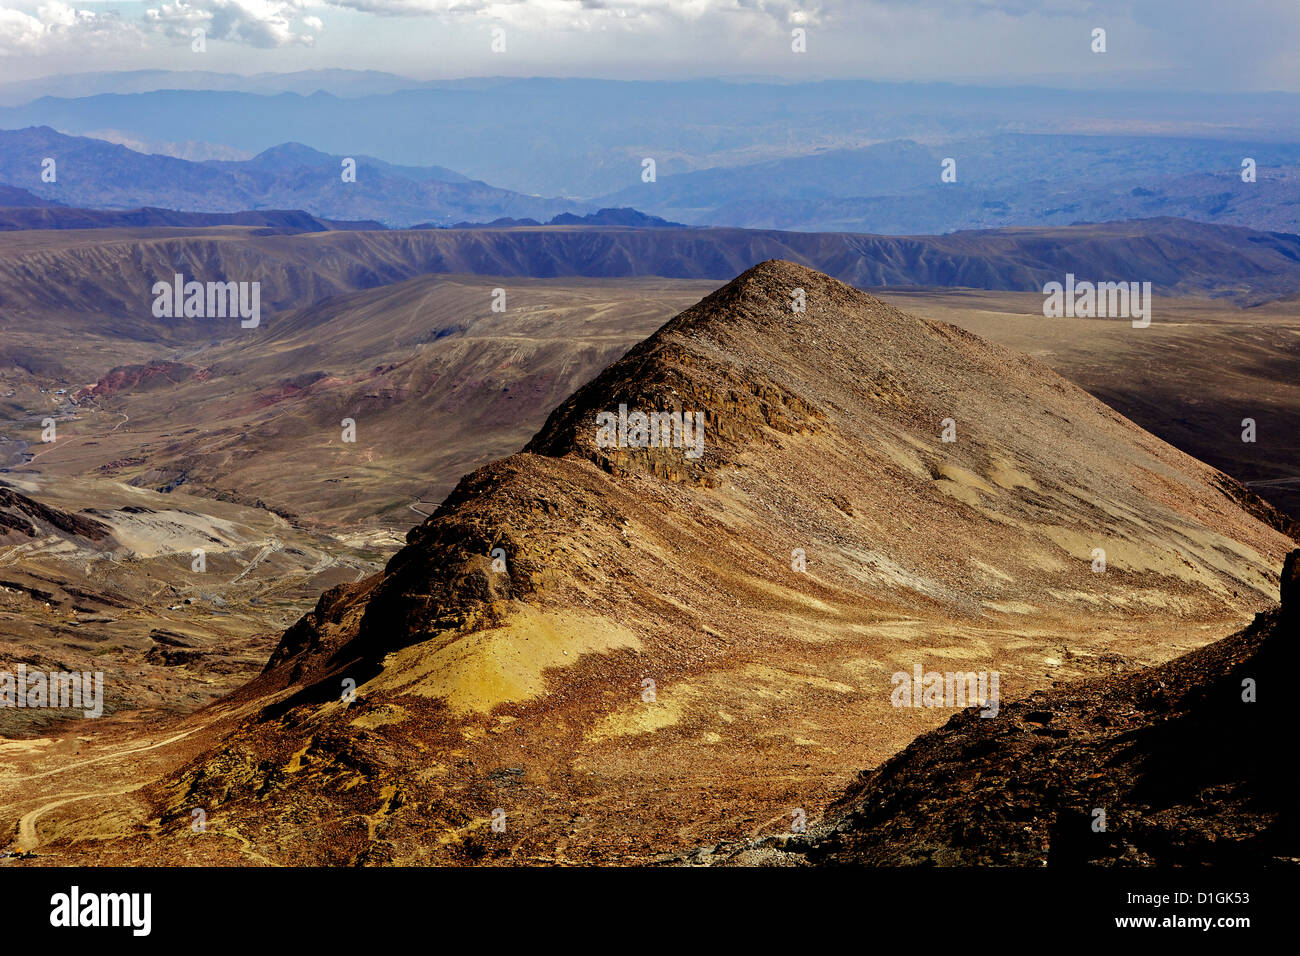 View from Mount Chacaltaya, altiplano in distance, Calahuyo near La Paz, Bolivia, Andes, South America - Stock Image